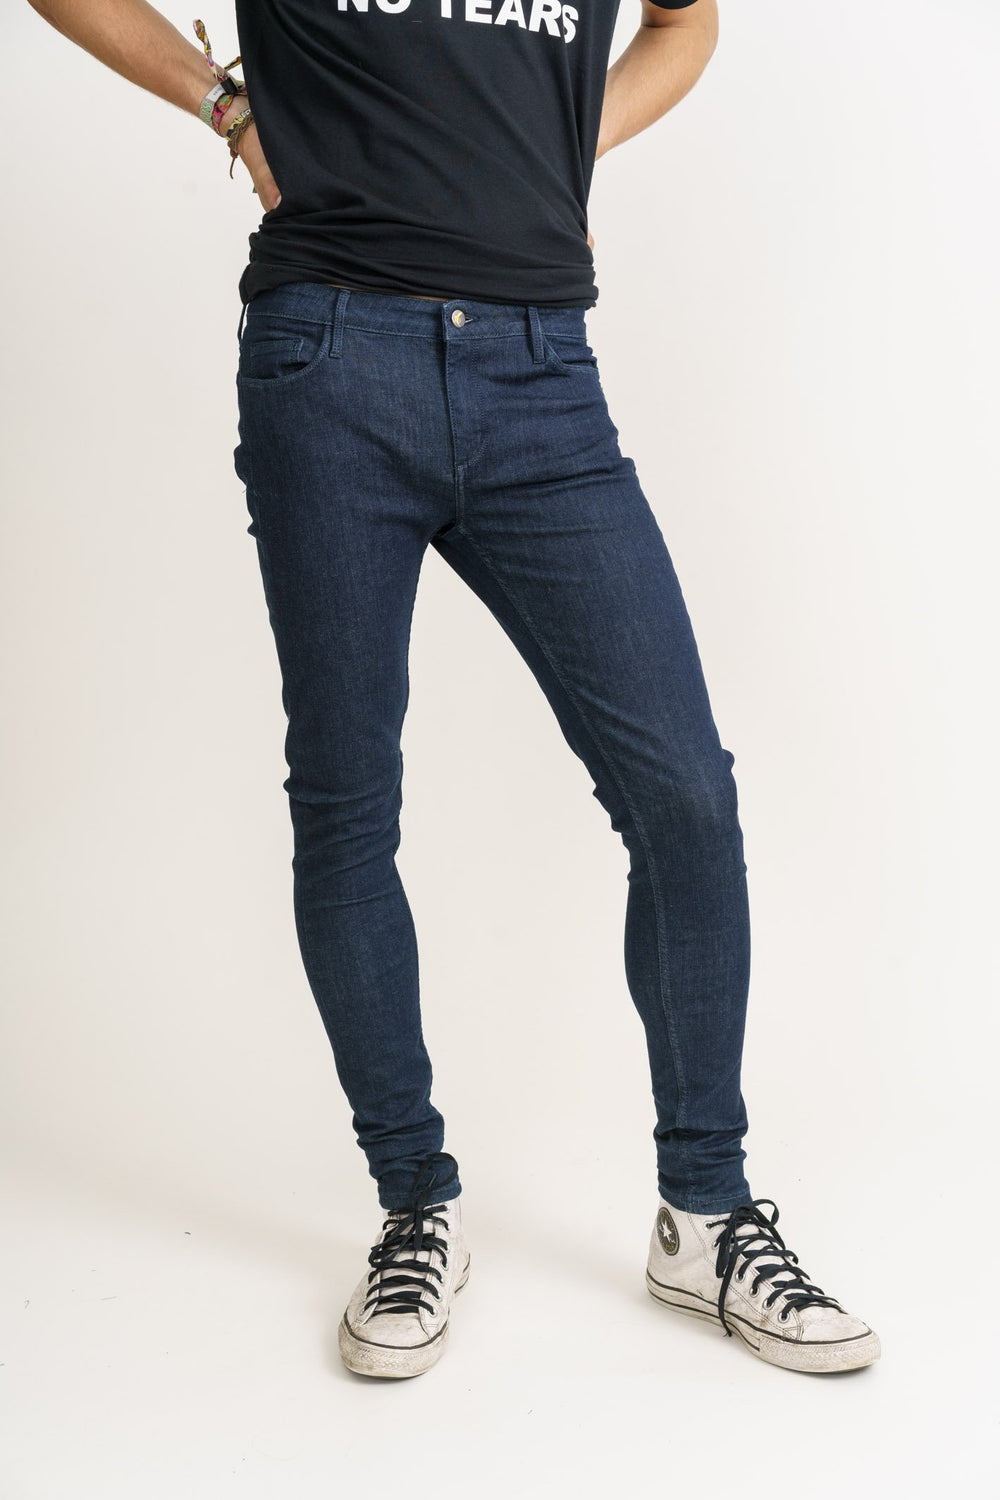 CODY // Organic Flex Super Skinny Mid Rise Jeans in Rinse Wash - Monkee Genes Organic Jeans Denim - Men's Silhouette Monkee Genes Official  Monkee Genes Official